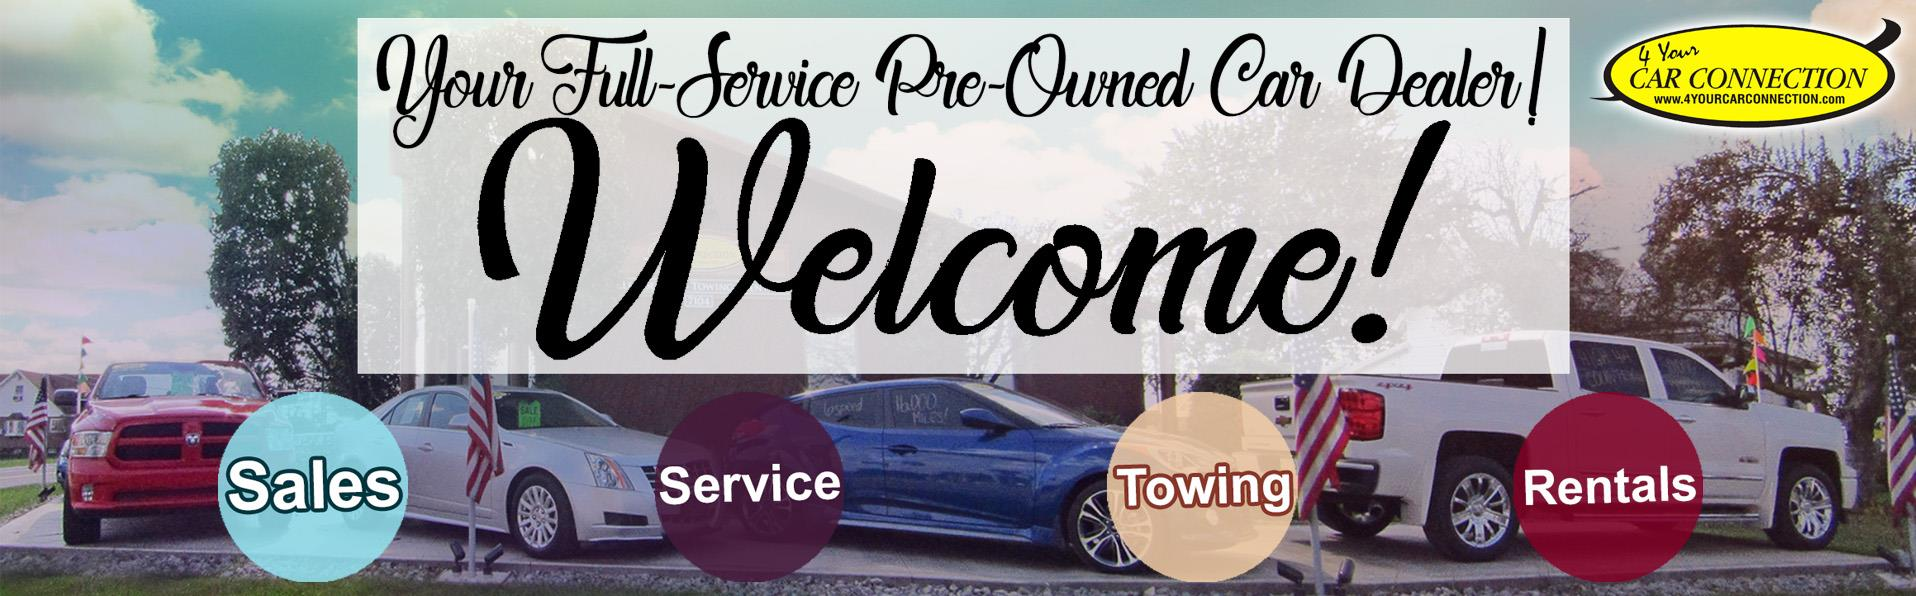 4 your car connection	  Used Cars Cranberry PA | Used Cars